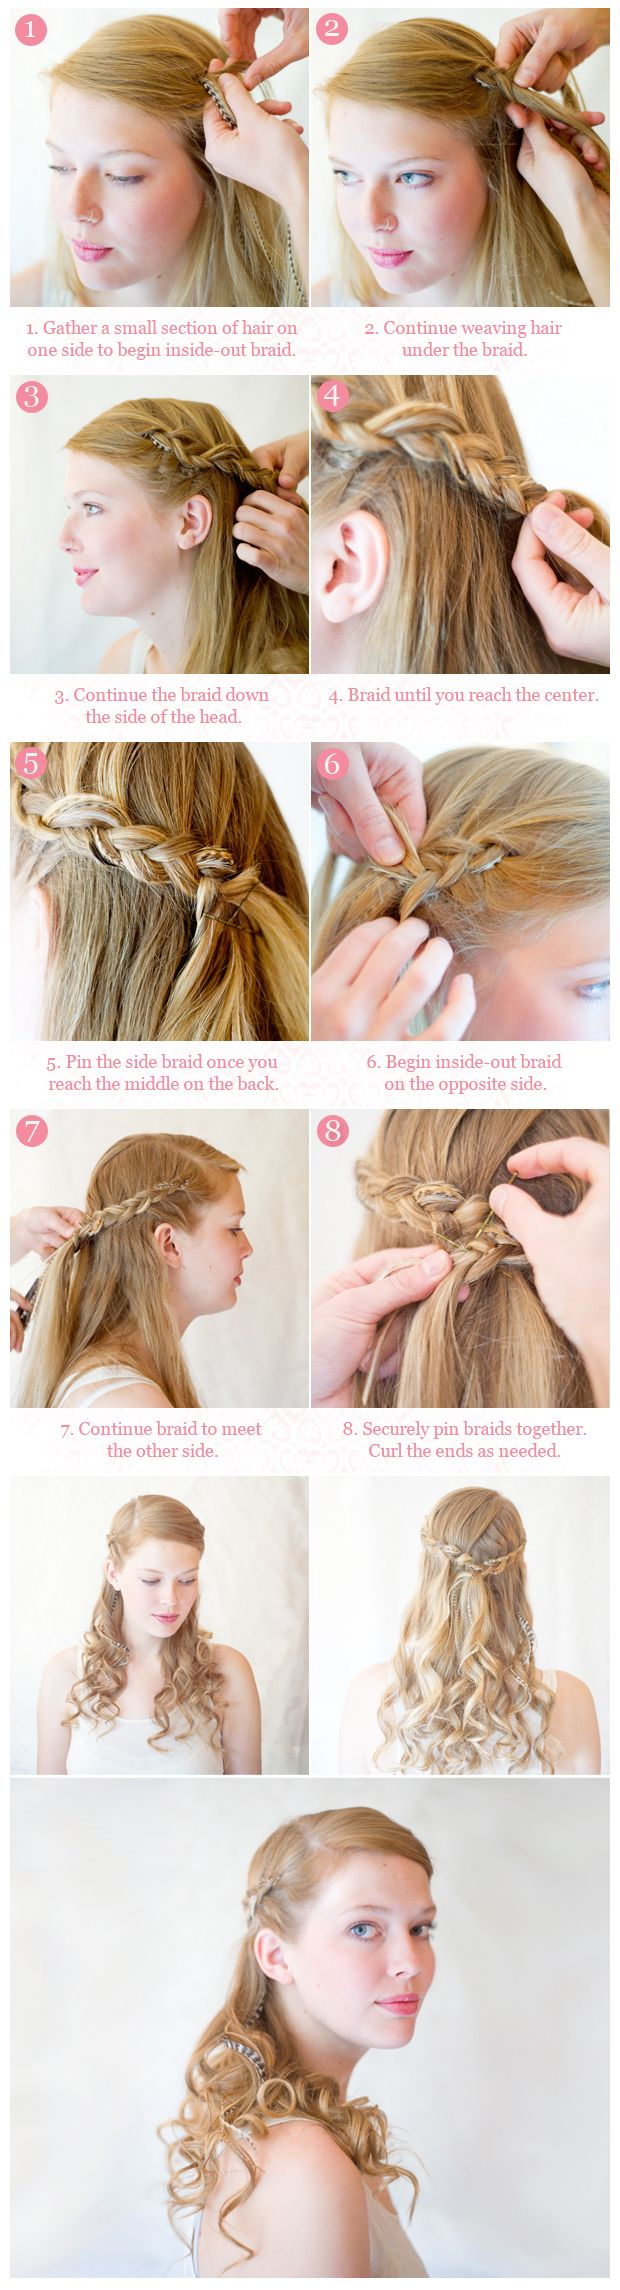 193 best do it yourself updos images on pinterest hairstyles 193 best do it yourself updos images on pinterest hairstyles ponytail styles and long hair updos pmusecretfo Gallery